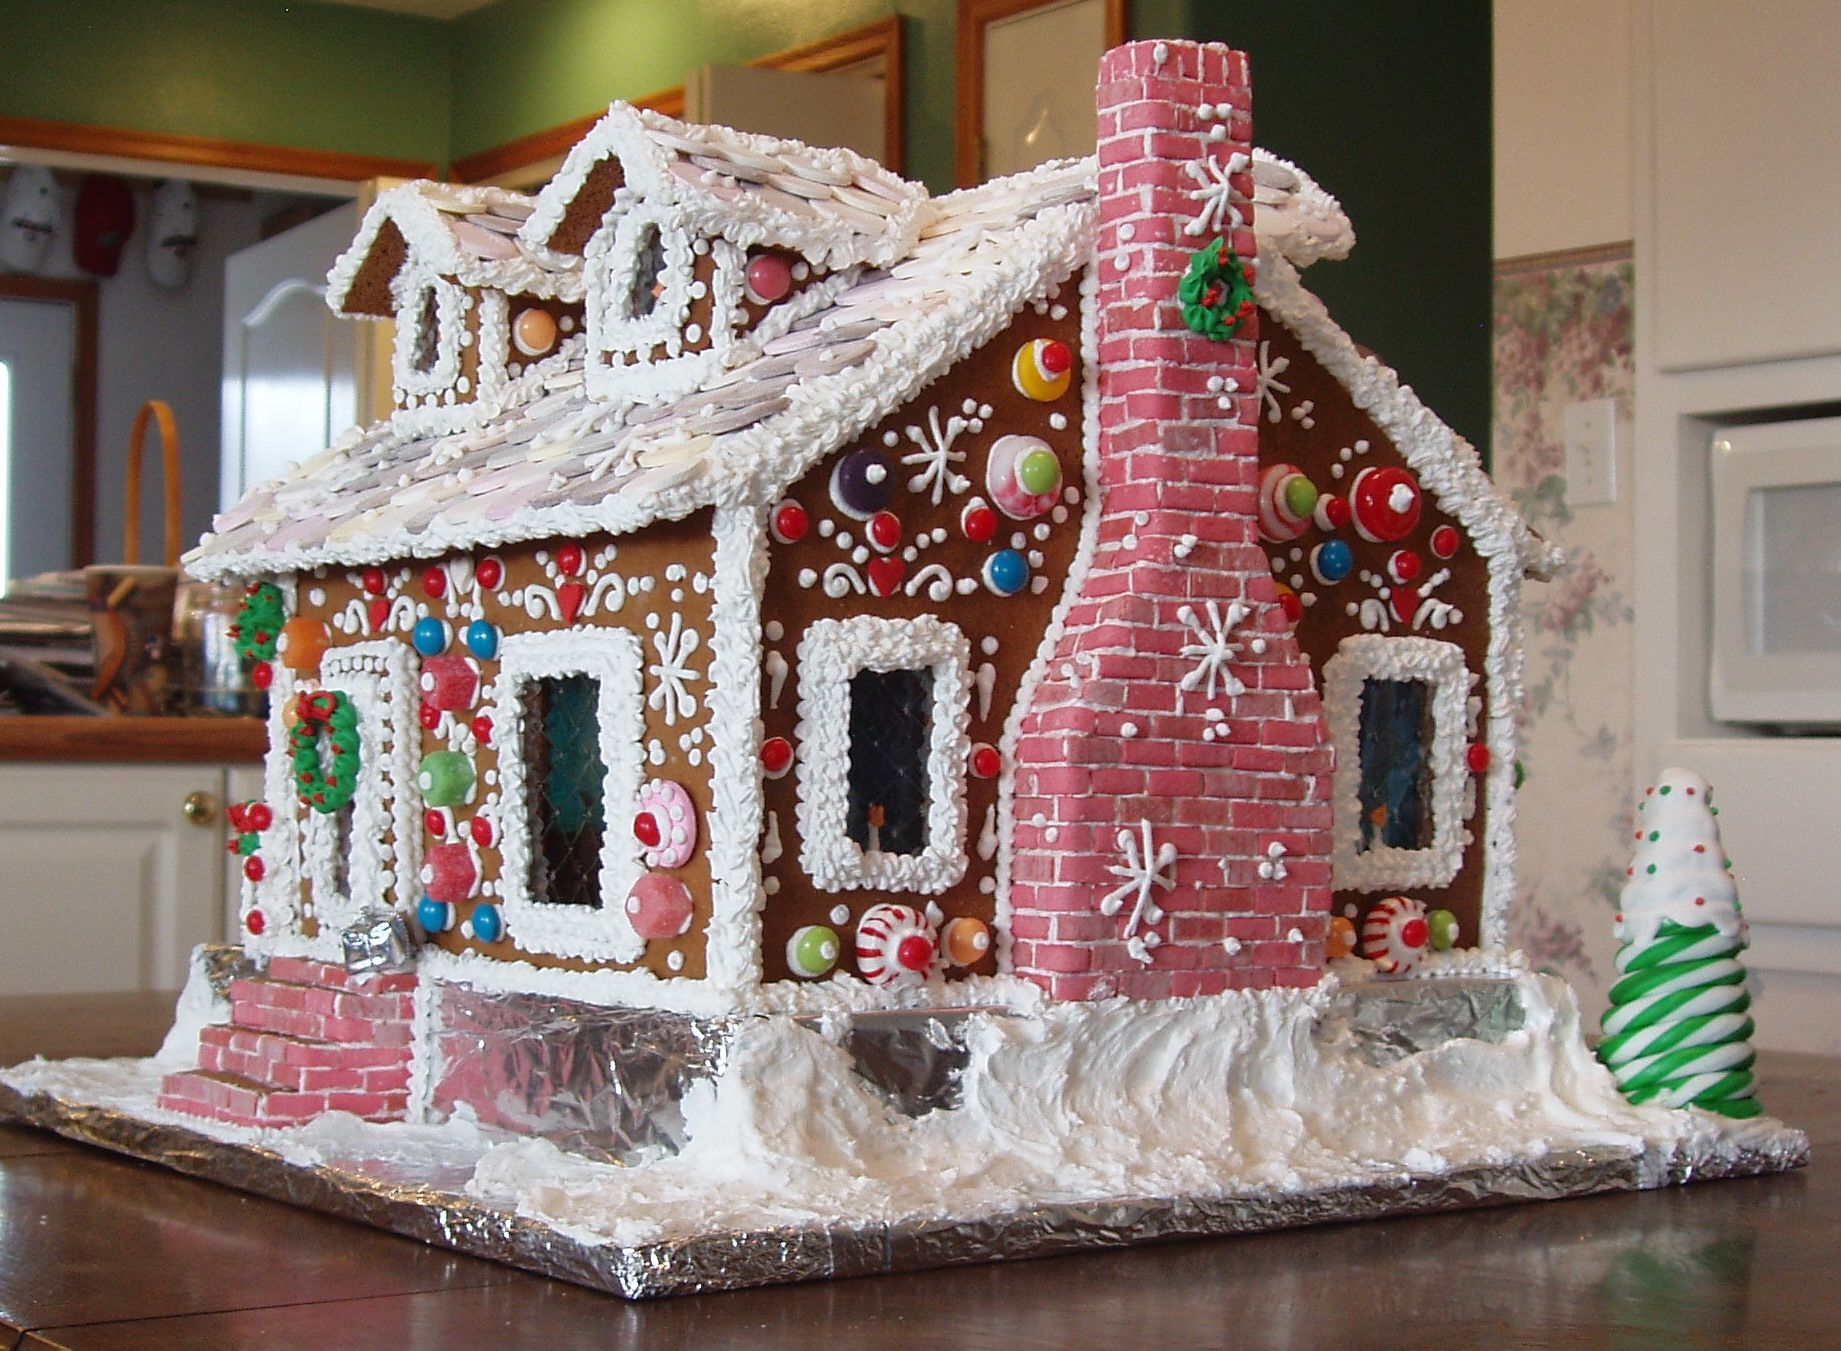 Victorian Gingerbread House by Lynne Schuyler.  Visit www.gingerbreadexchange.com for free patterns, photos, and more.